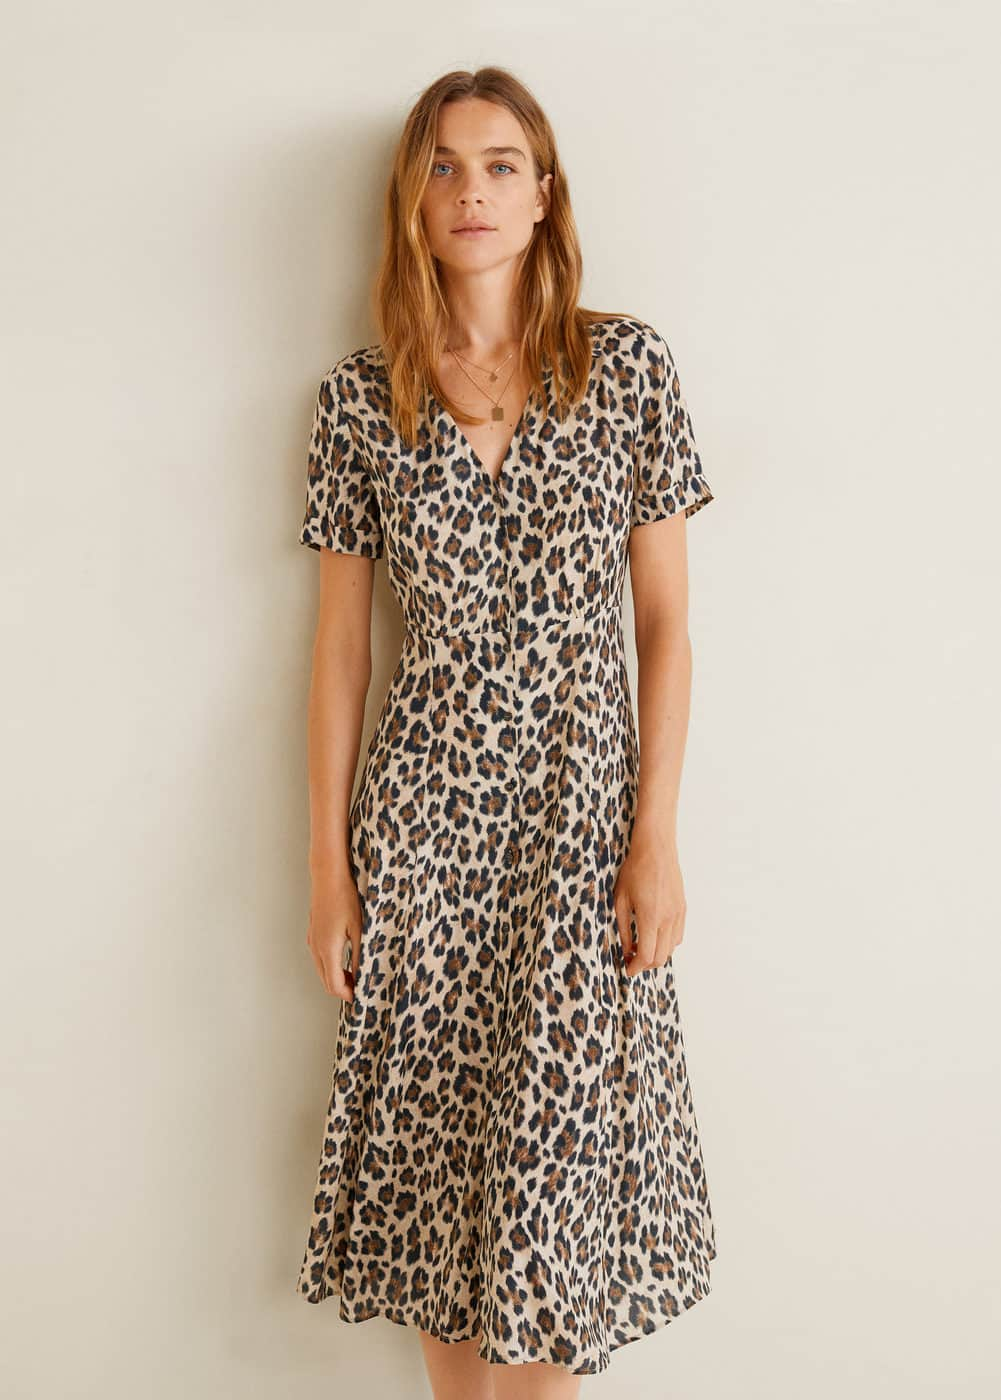 Leopard Print Dress by Mango